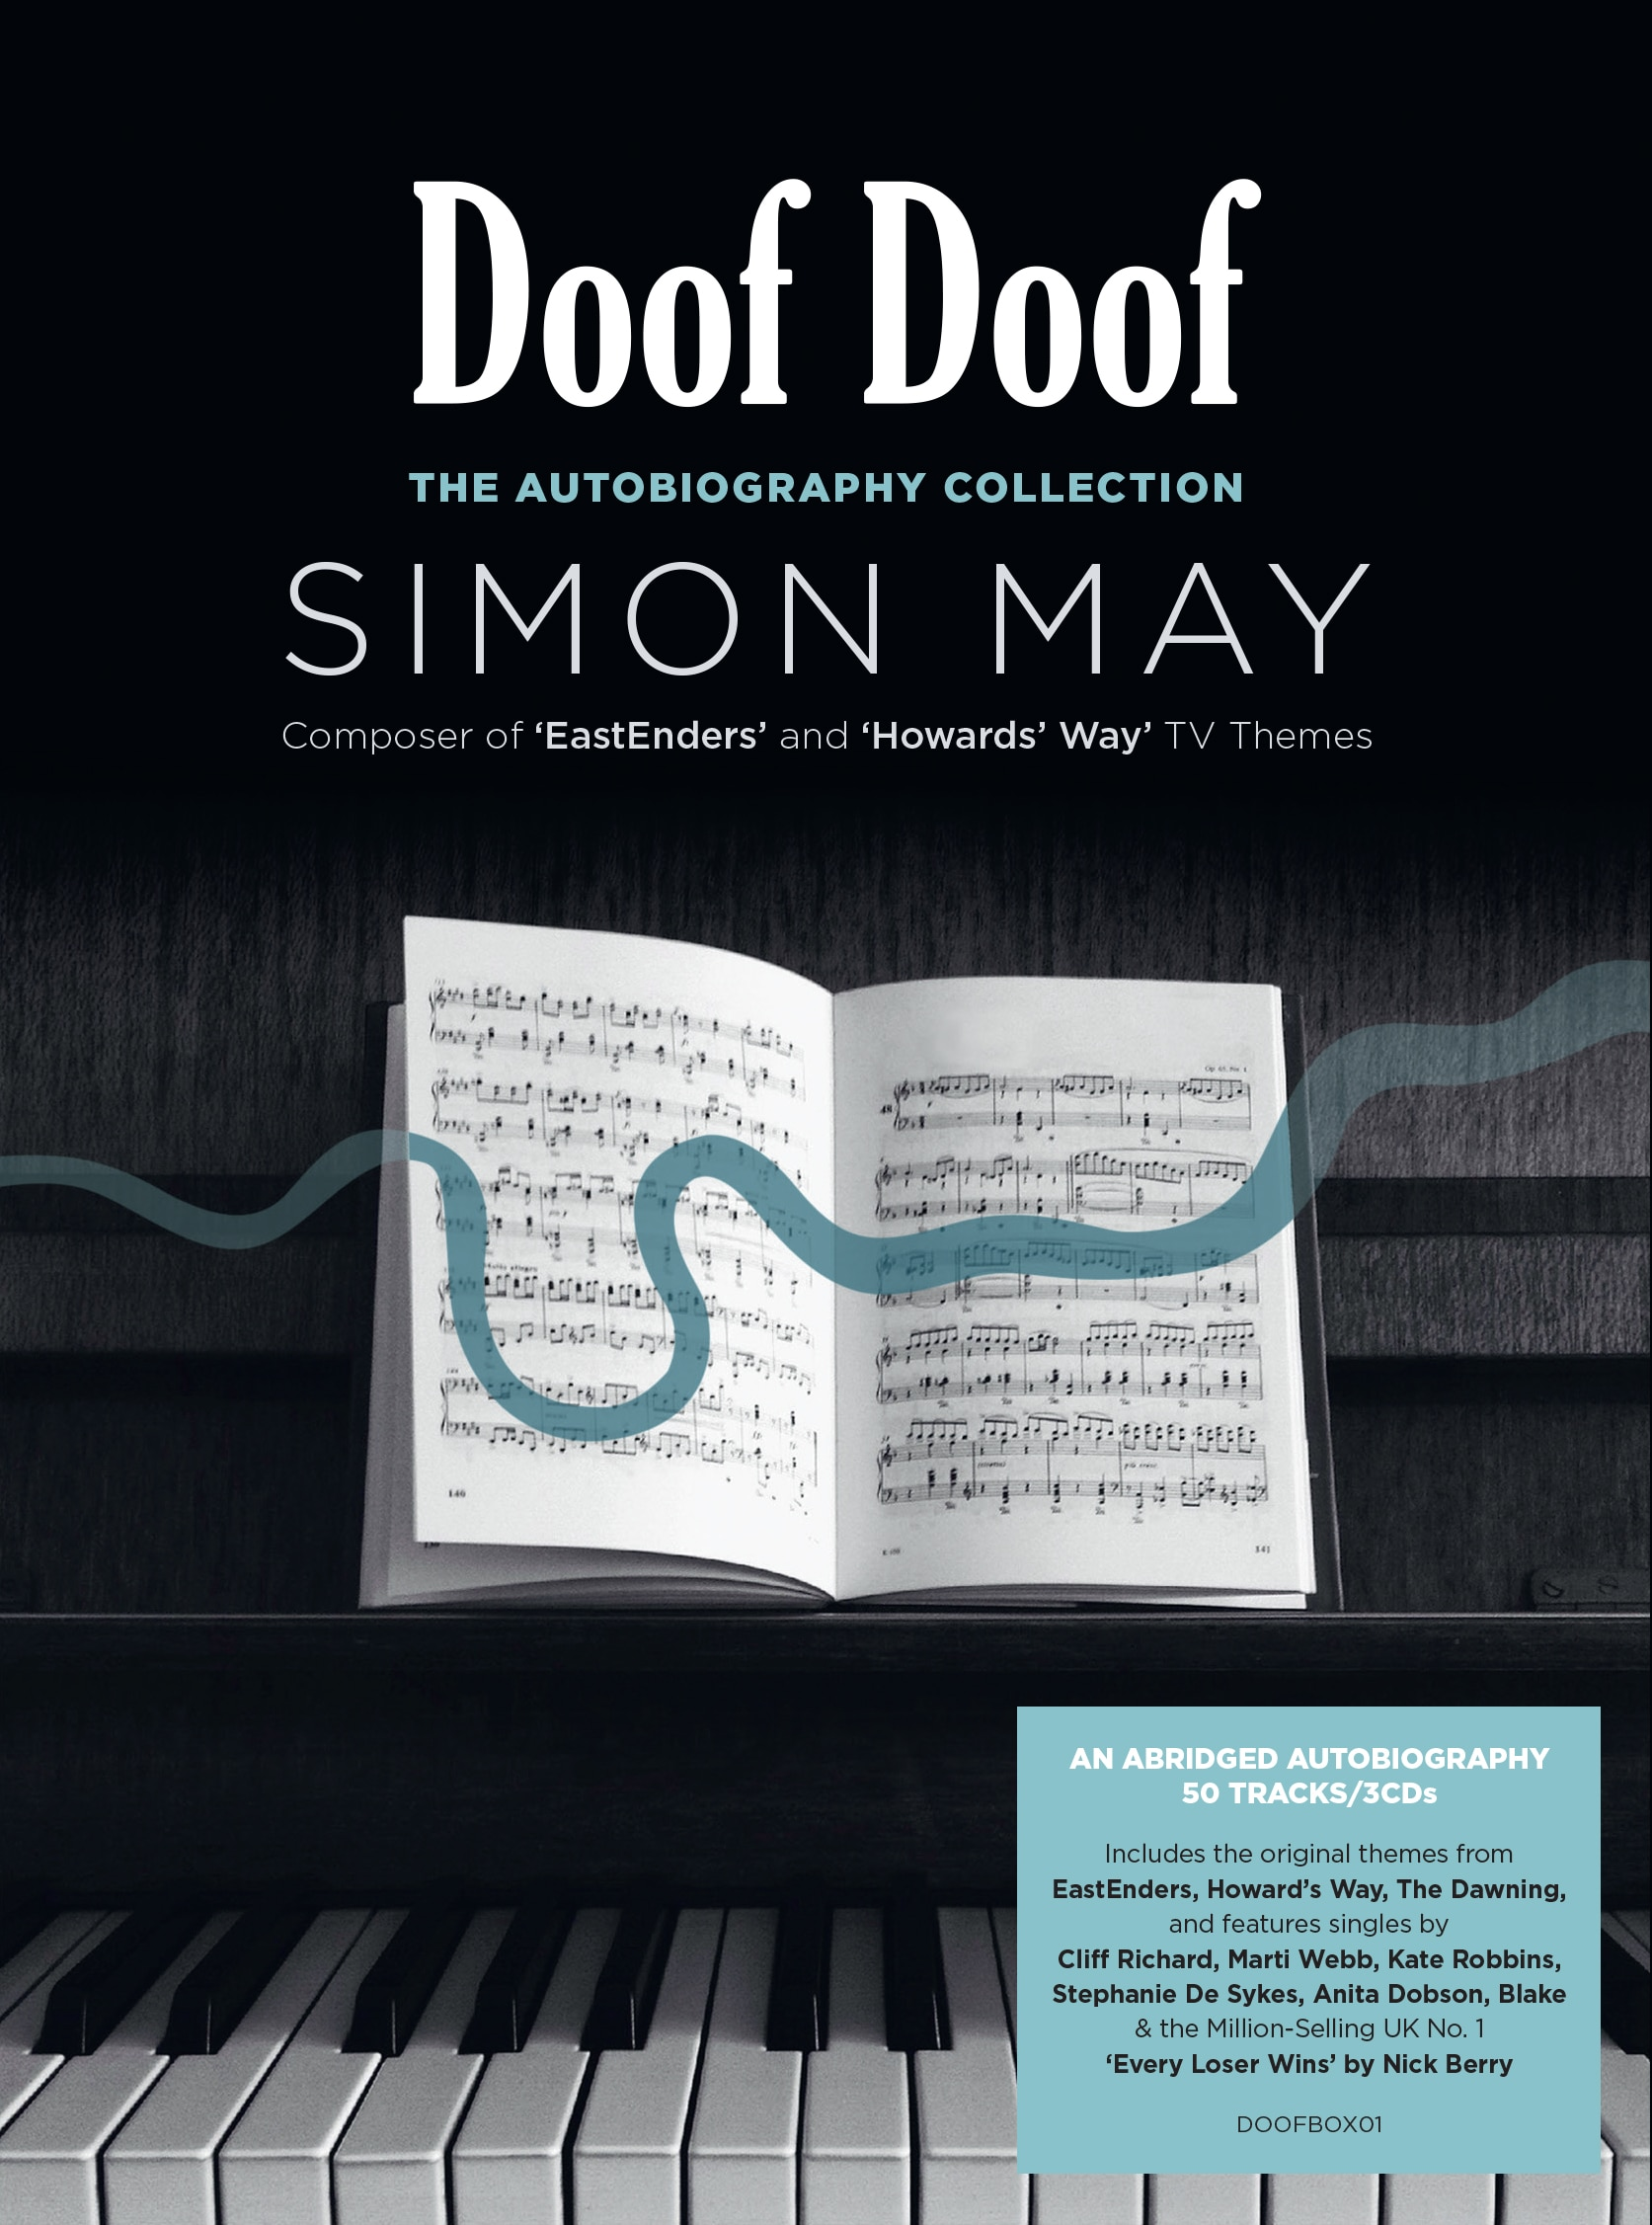 Video Interview with Simon May – Composer of the EastEnders' Theme